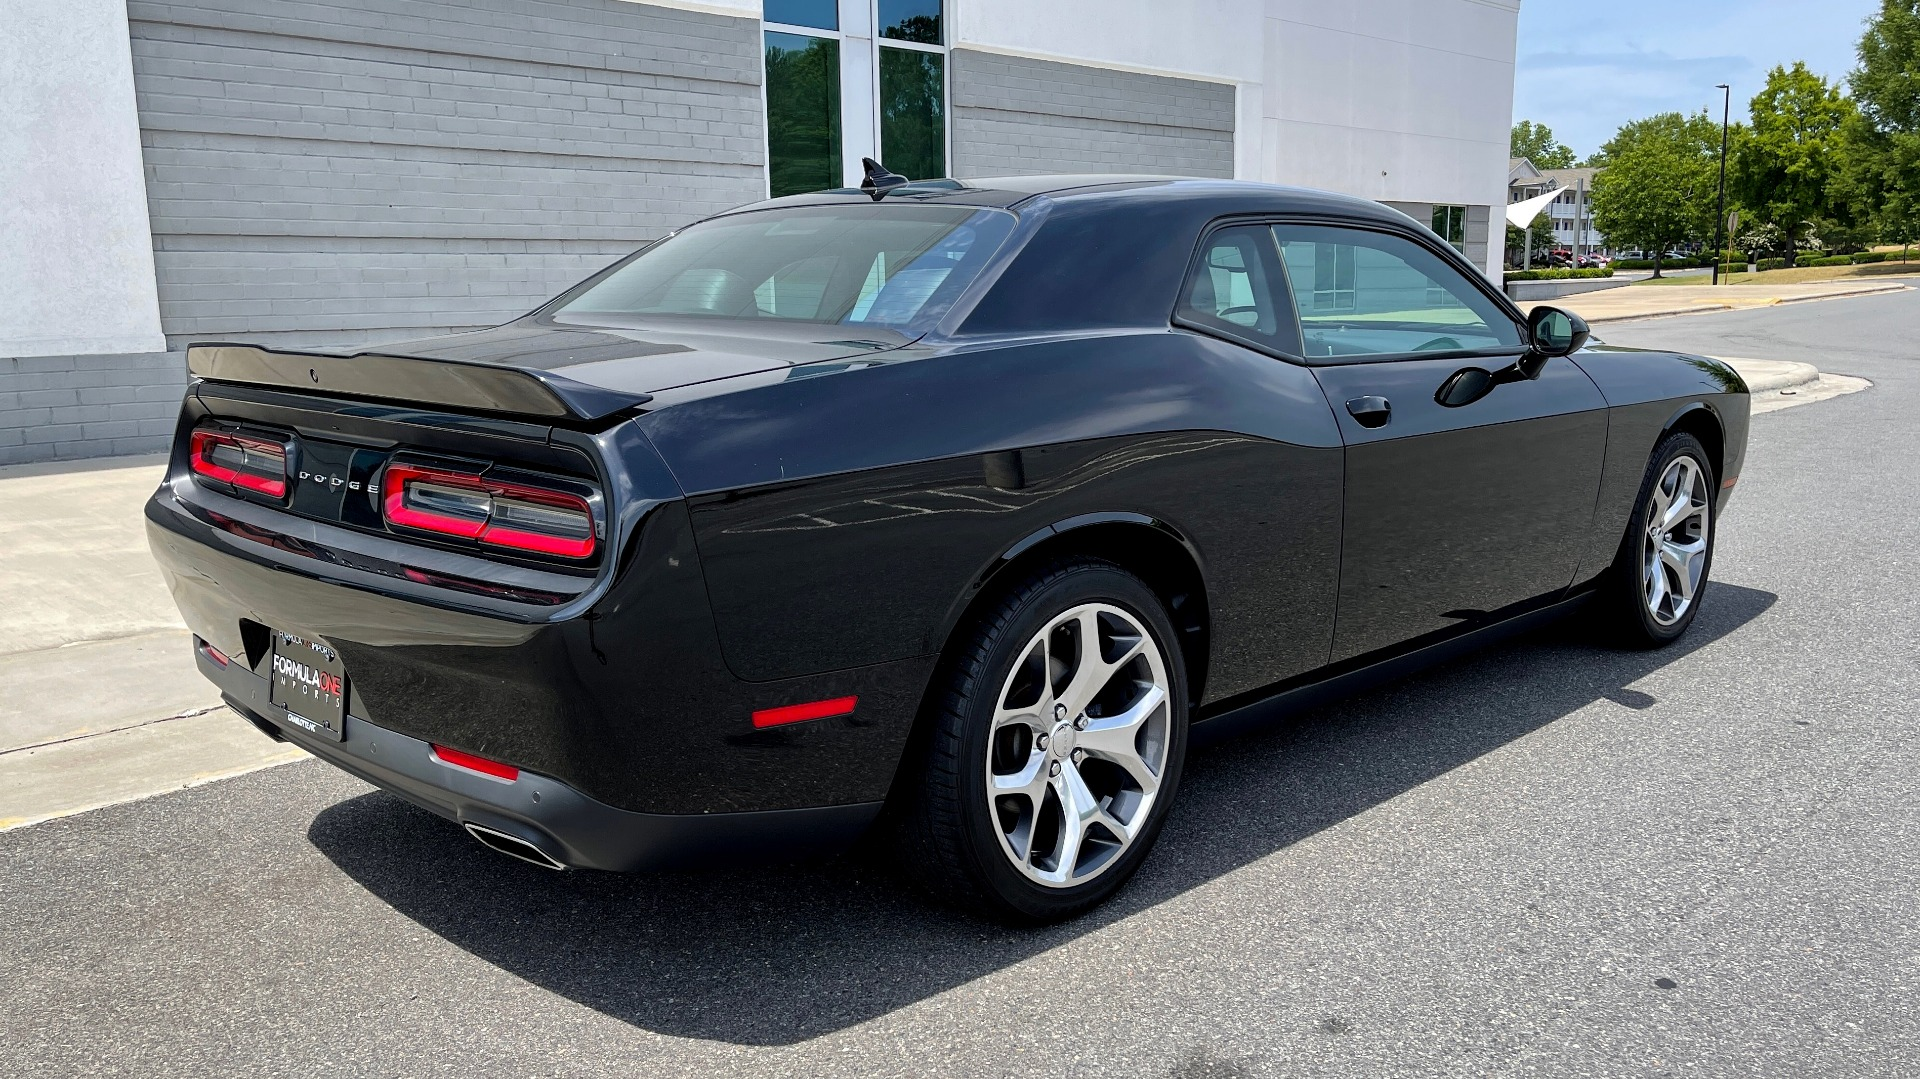 Used 2015 Dodge CHALLENGER SXT PLUS COUPE / 3.6L V6 / 8-SPD AUTO / NAV / ALPINE / SUNROOF / REARVIEW for sale Sold at Formula Imports in Charlotte NC 28227 2